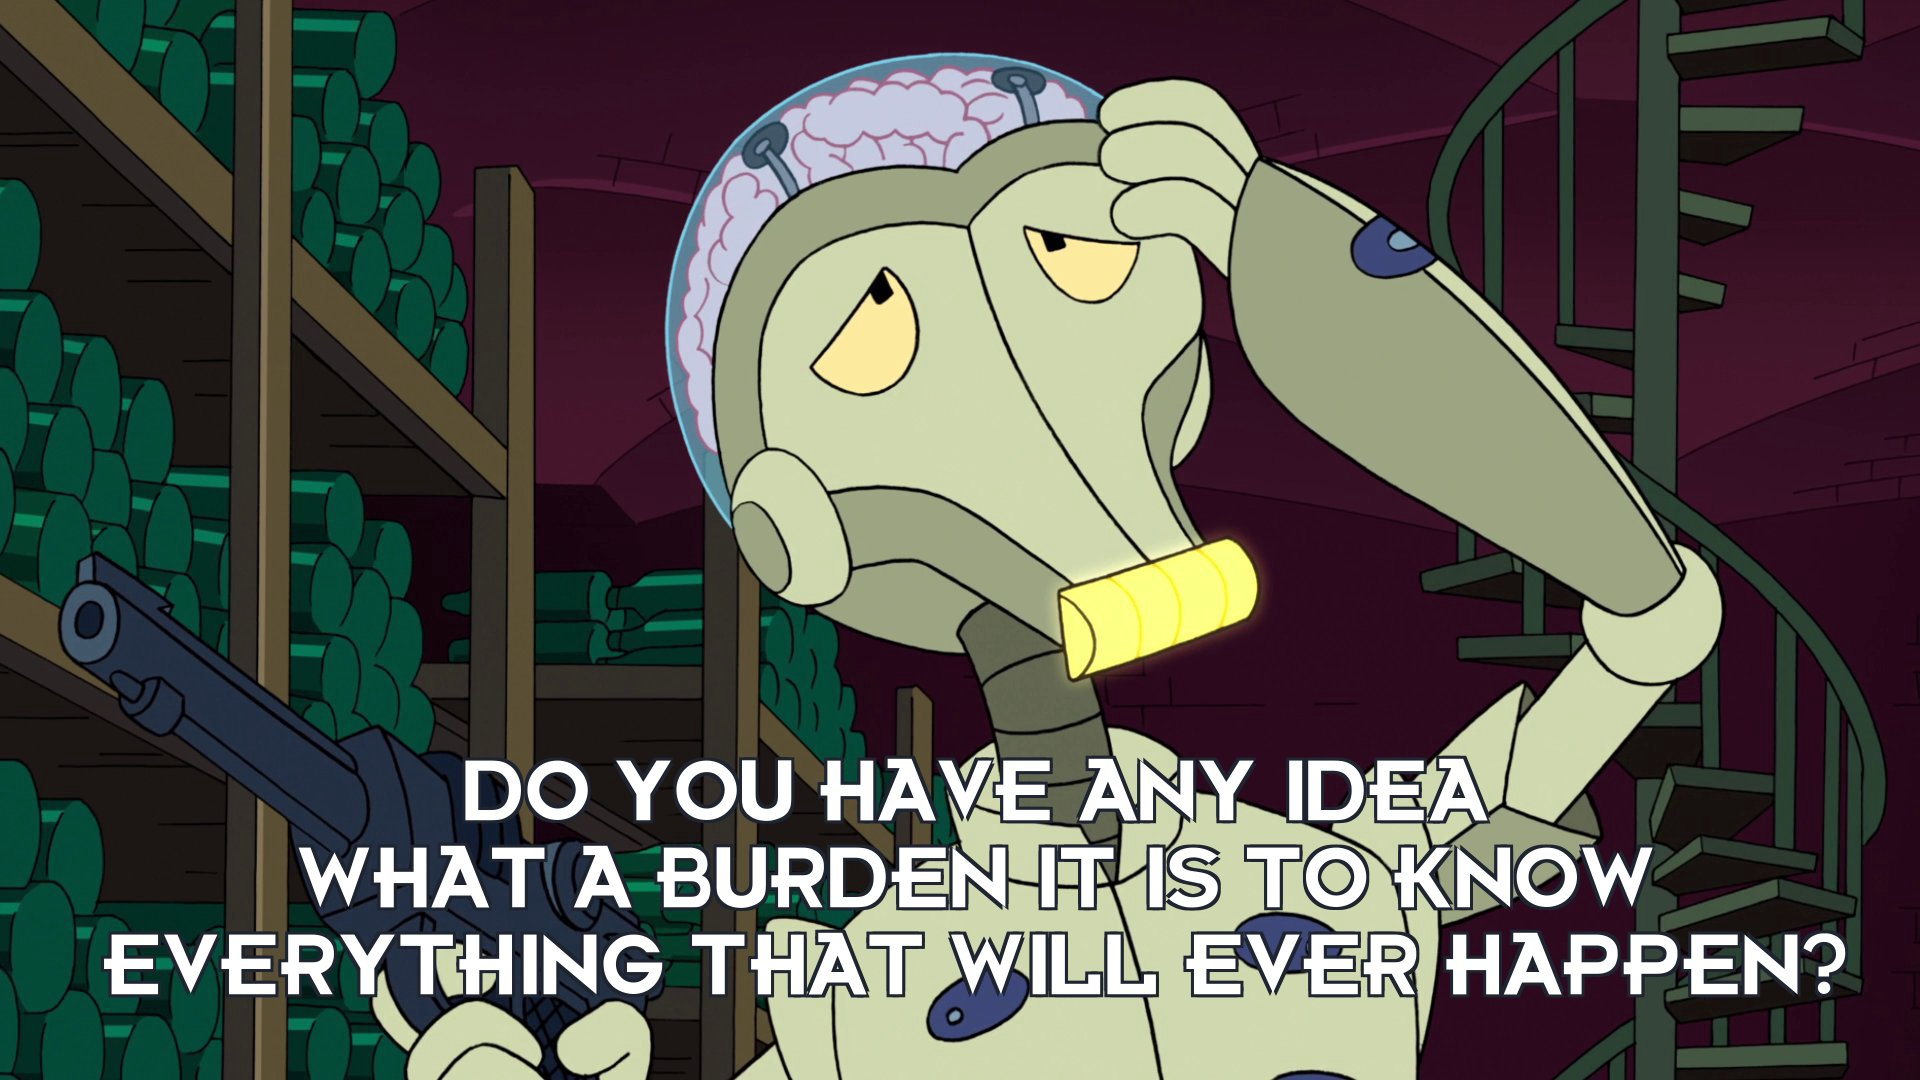 Pickles: Do you have any idea what a burden it is to know everything that will ever happen?